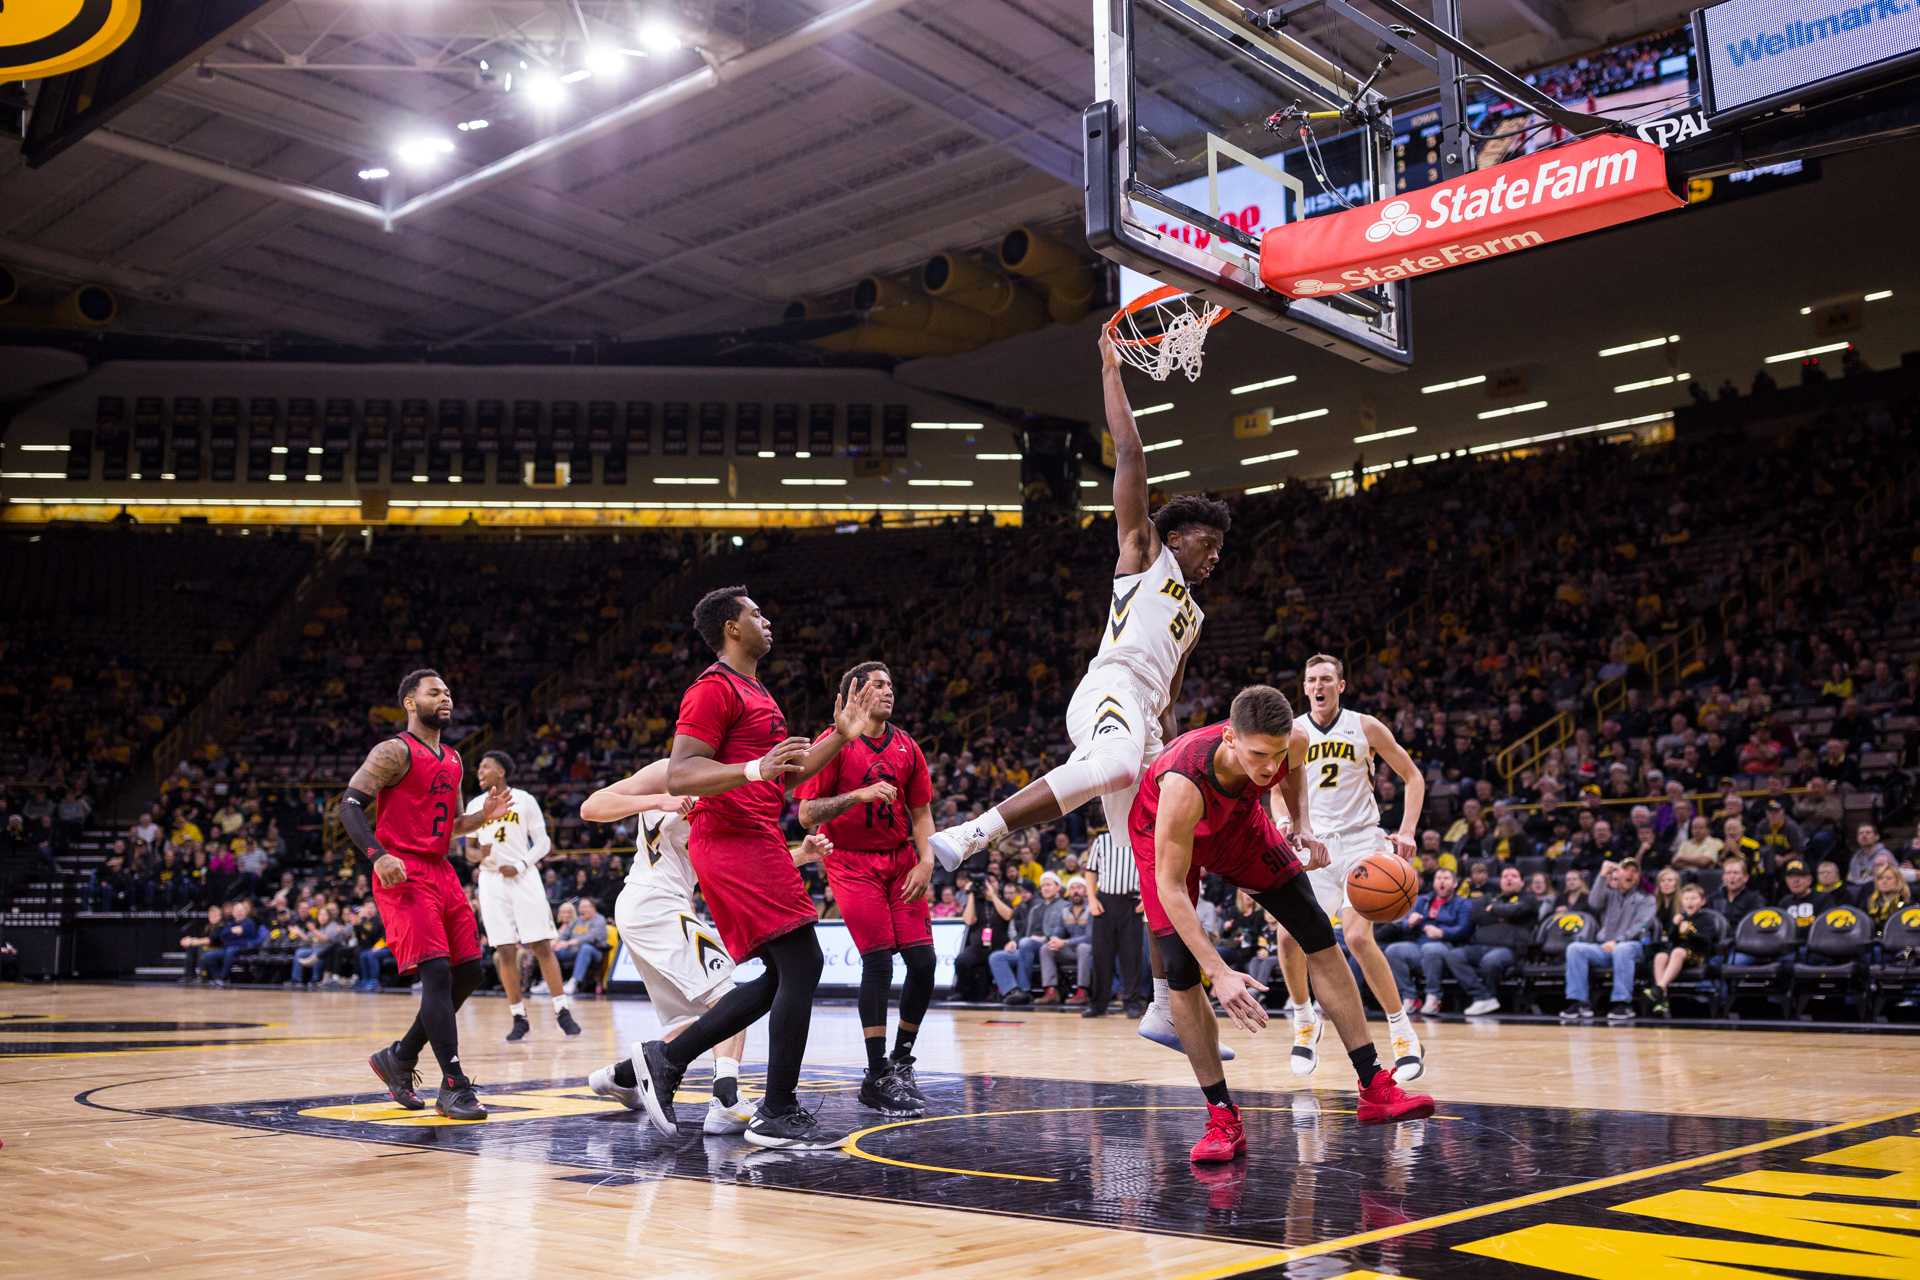 Iowa forward Tyler Cook slams down a dunk against Southern Utah University during the first half of a basketball game at Carver-Hawkeye Arena on Tuesday, Dec. 19, 2017. The Hawkeyes defeated the Thunderbirds 92-64. (David Harmantas/The Daily Iowan)